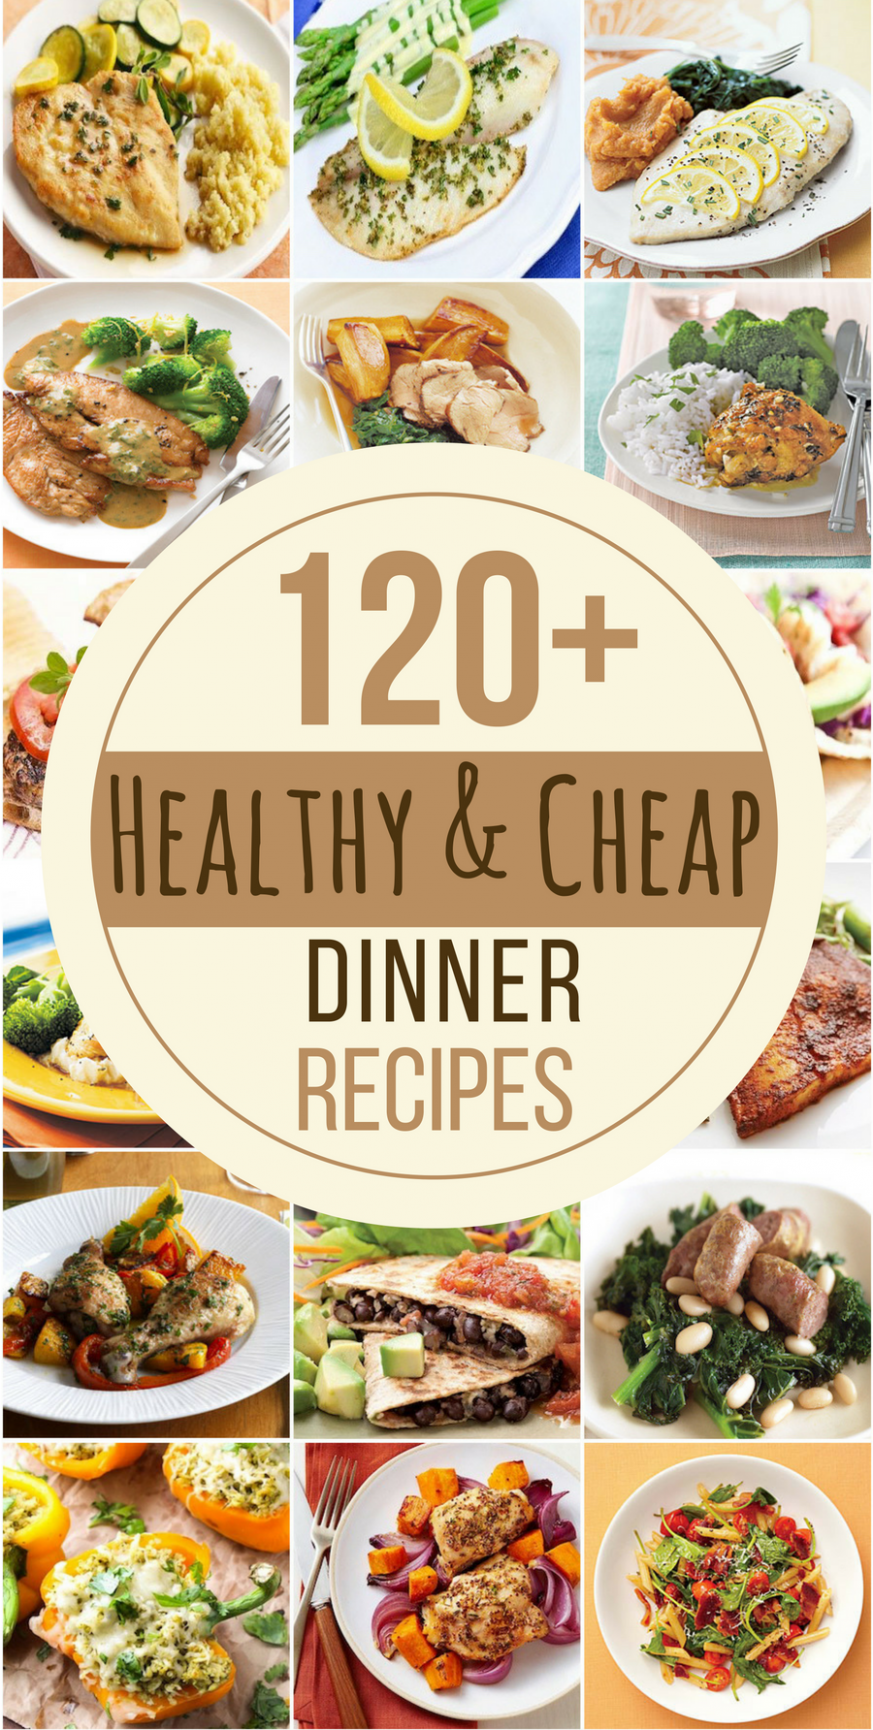 12 Healthy and Cheap Dinner Recipes | Apple Recipes | Gesunde ..